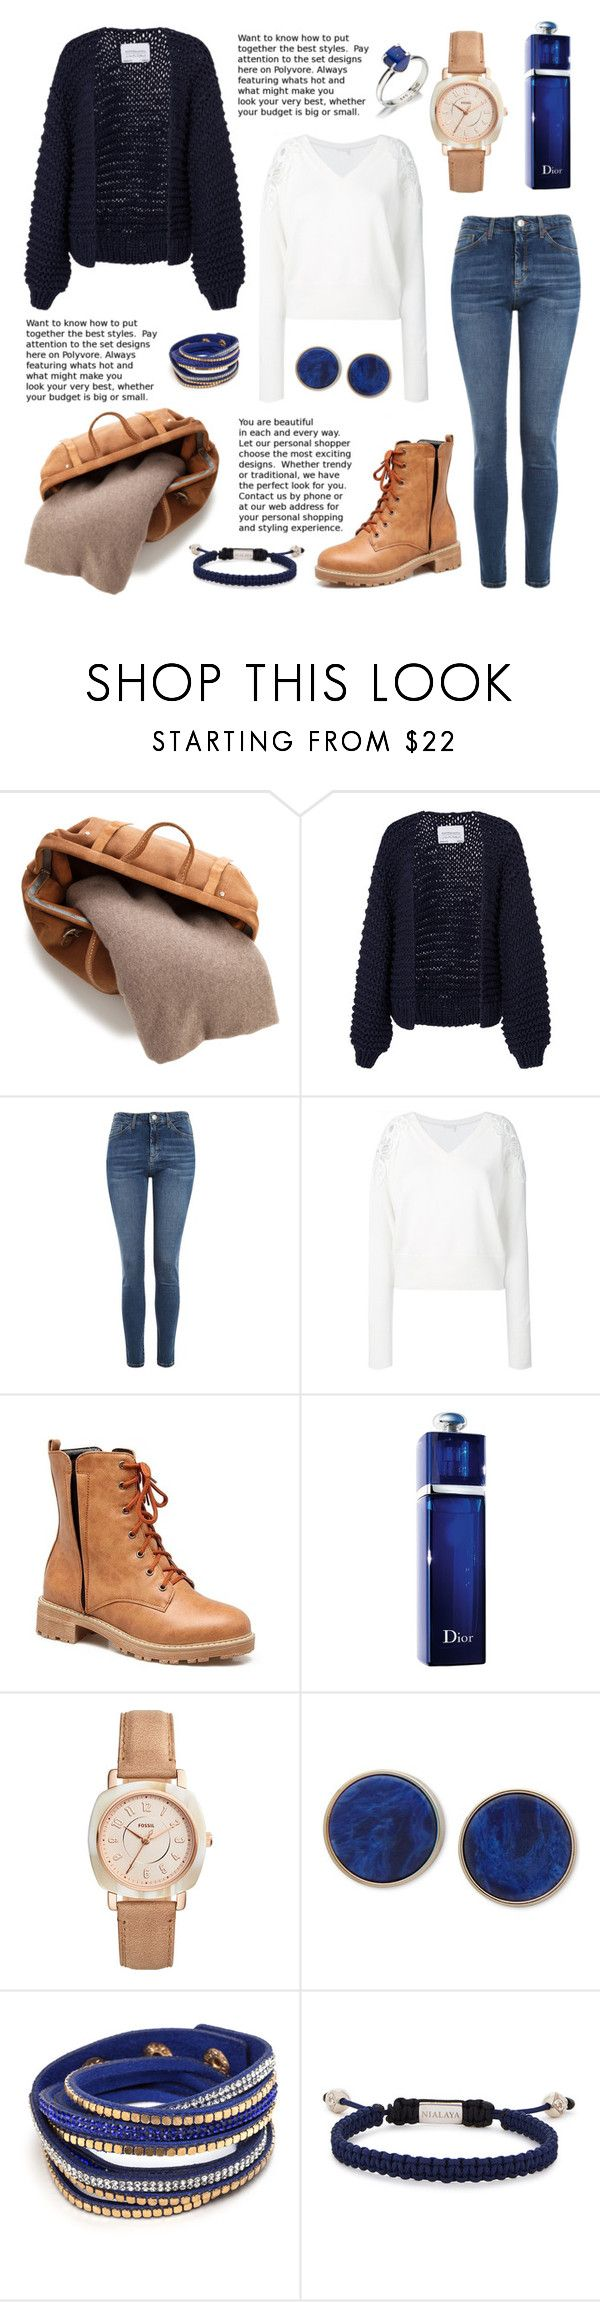 """night blue"" by zaazbymary ❤ liked on Polyvore featuring White + Warren, I Love Mr. Mittens, Topshop, Chloé, Christian Dior, FOSSIL, DKNY, Nialaya and Lazuli"